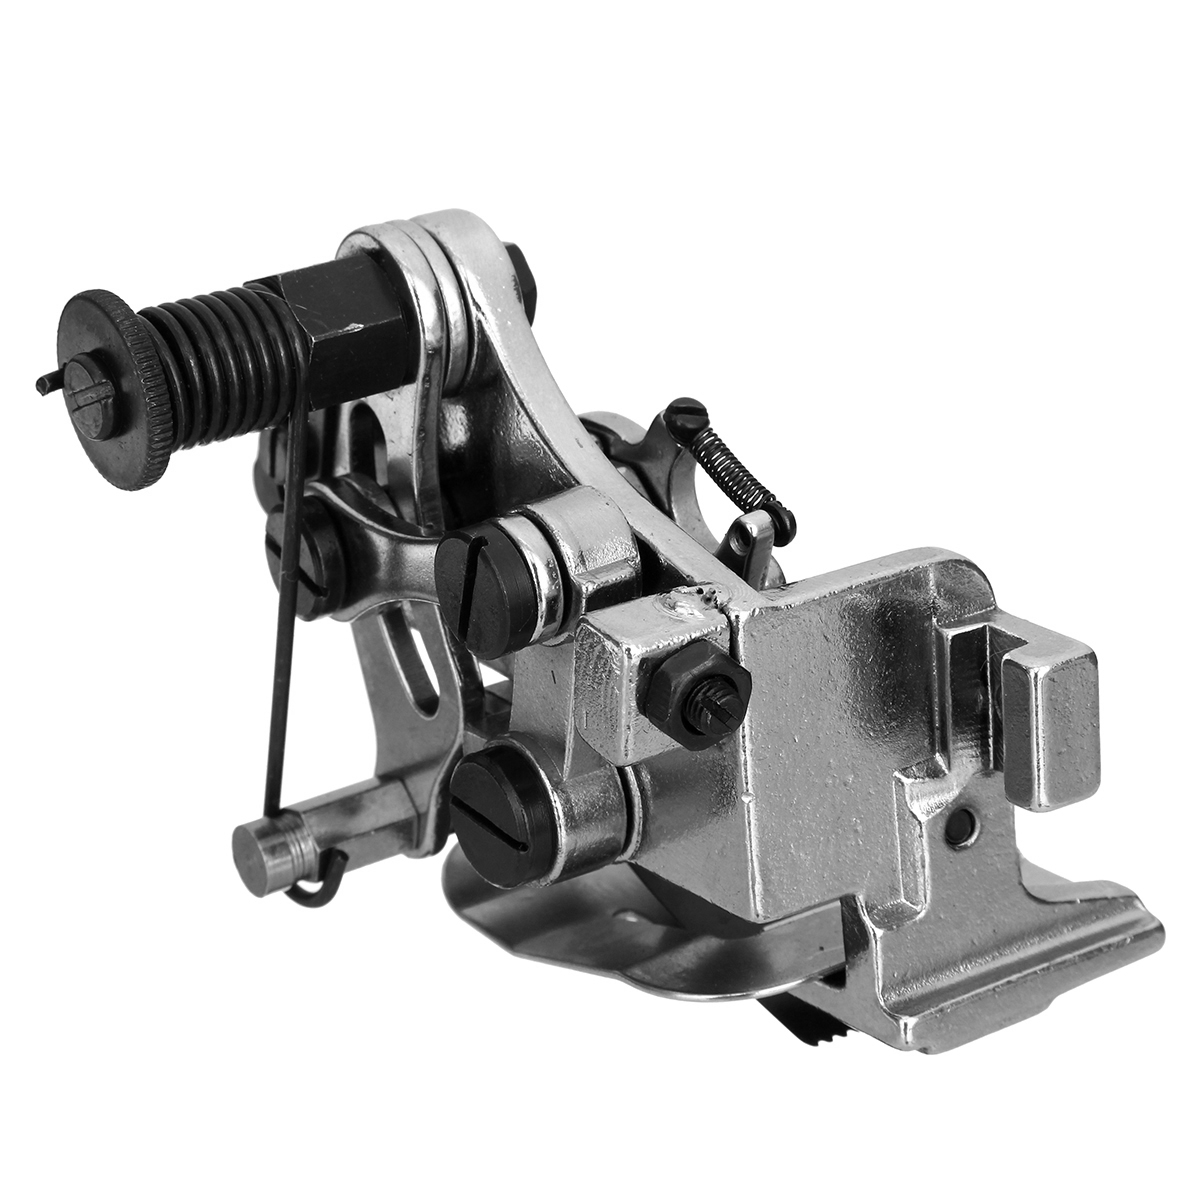 Ruffler Attachment Foot Industrial Sewing Machine For Singer Brother Juki 227 552 553 555 Threading Diagram Detail Image